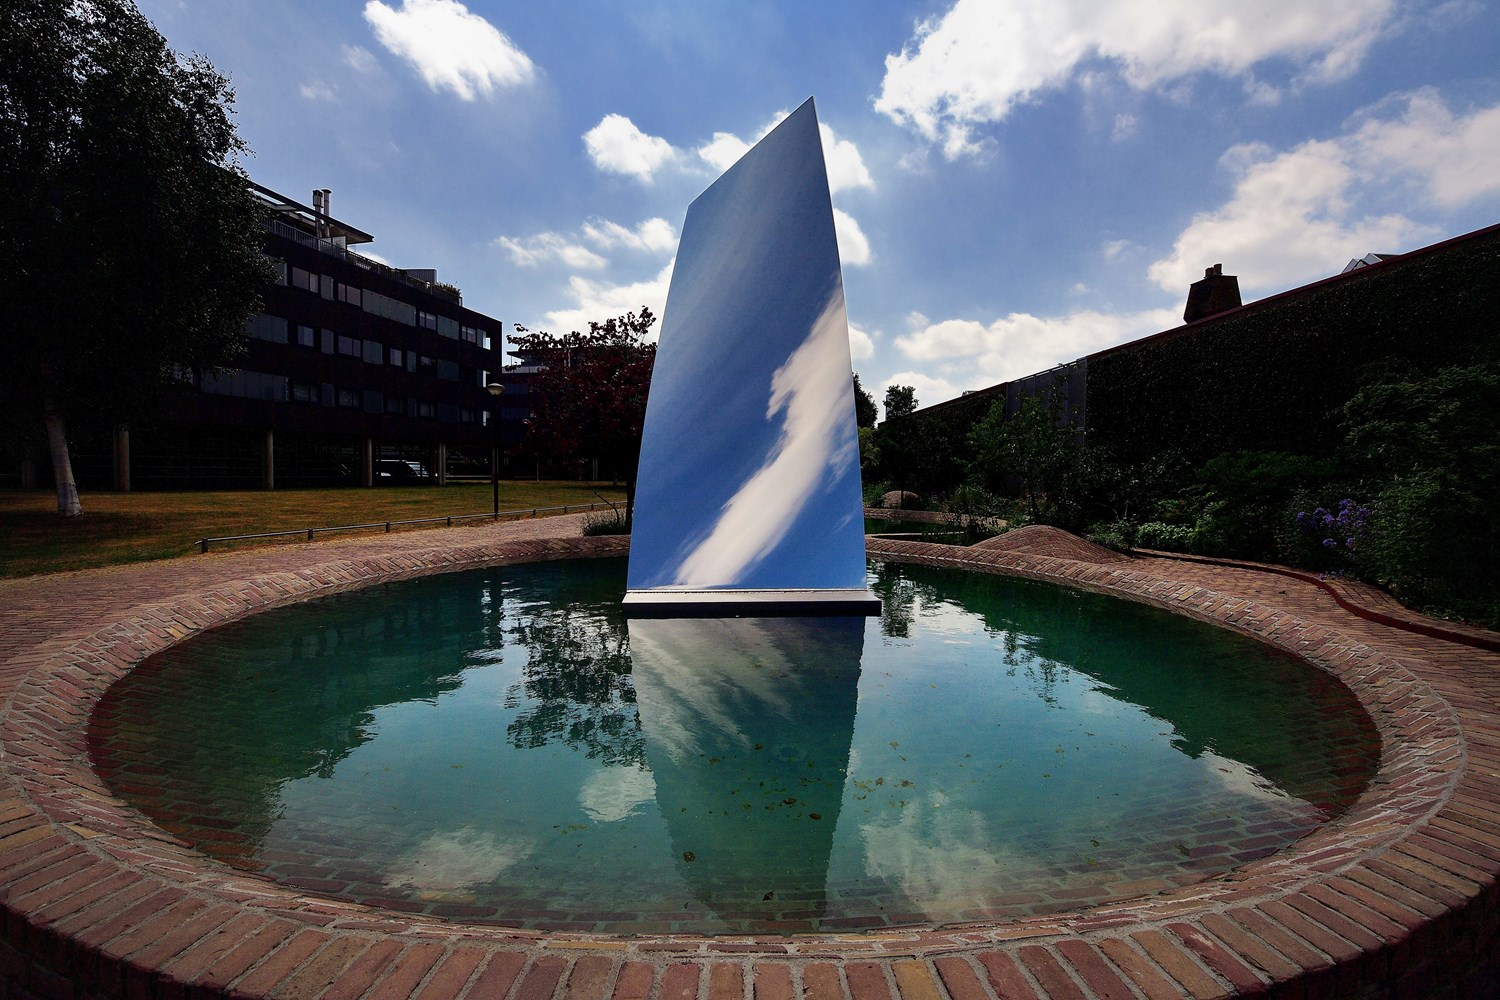 Sky Mirror for Hendrik, Anish Kapoor, collection De Pont.